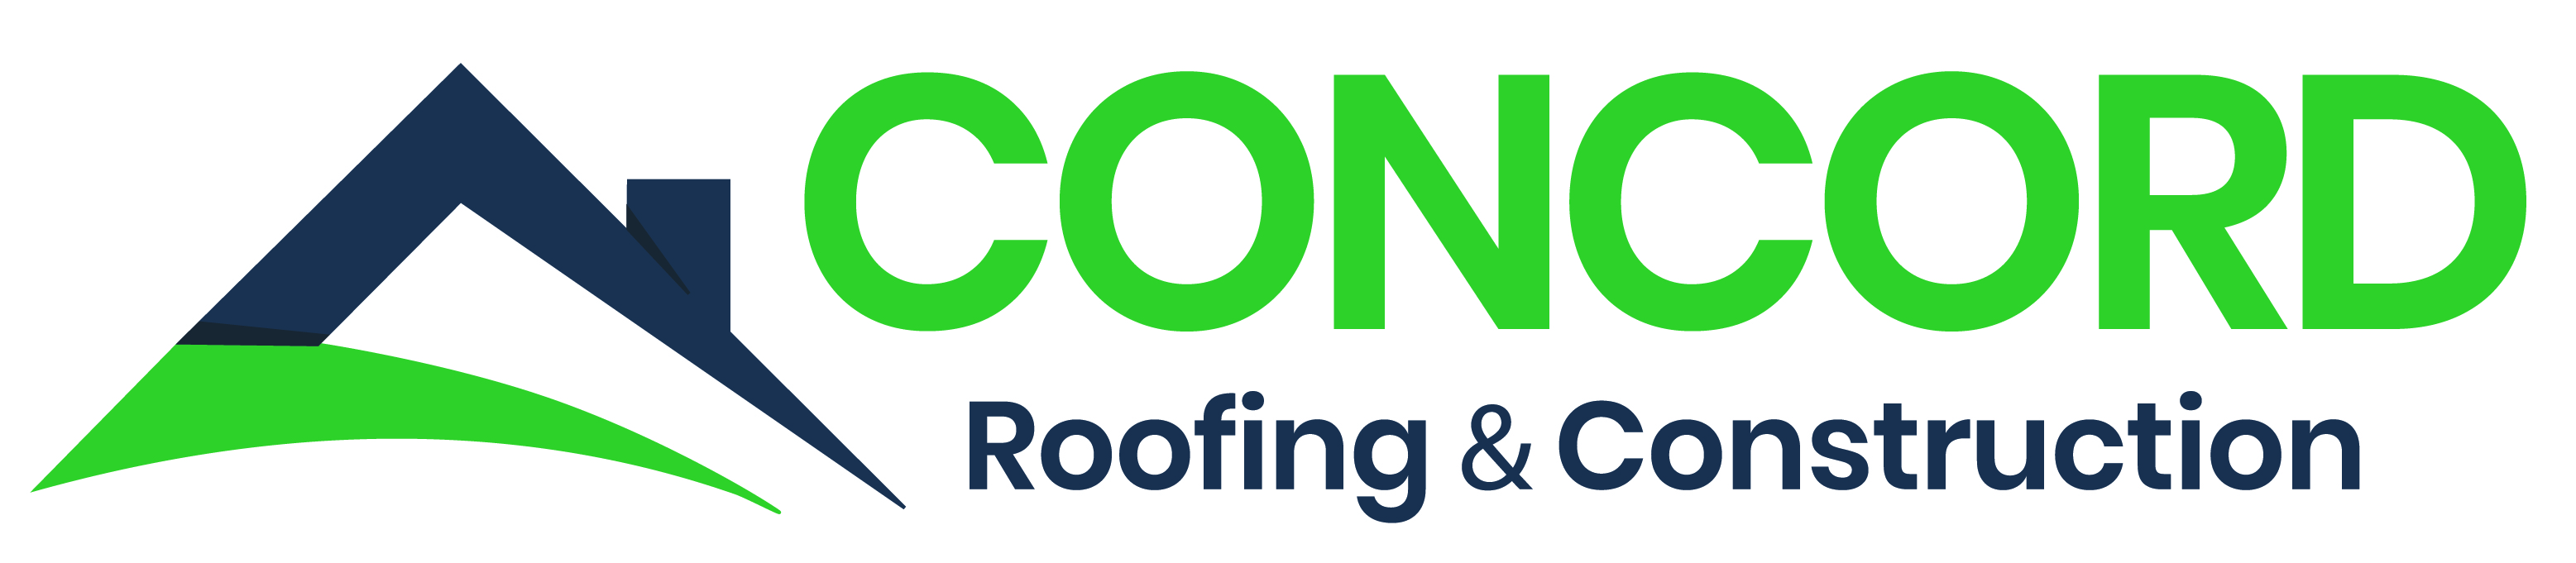 Southlake Roof Repair FREE Inspection Southlake Roofing Contractor - Free roofing invoice template online clothing stores for juniors